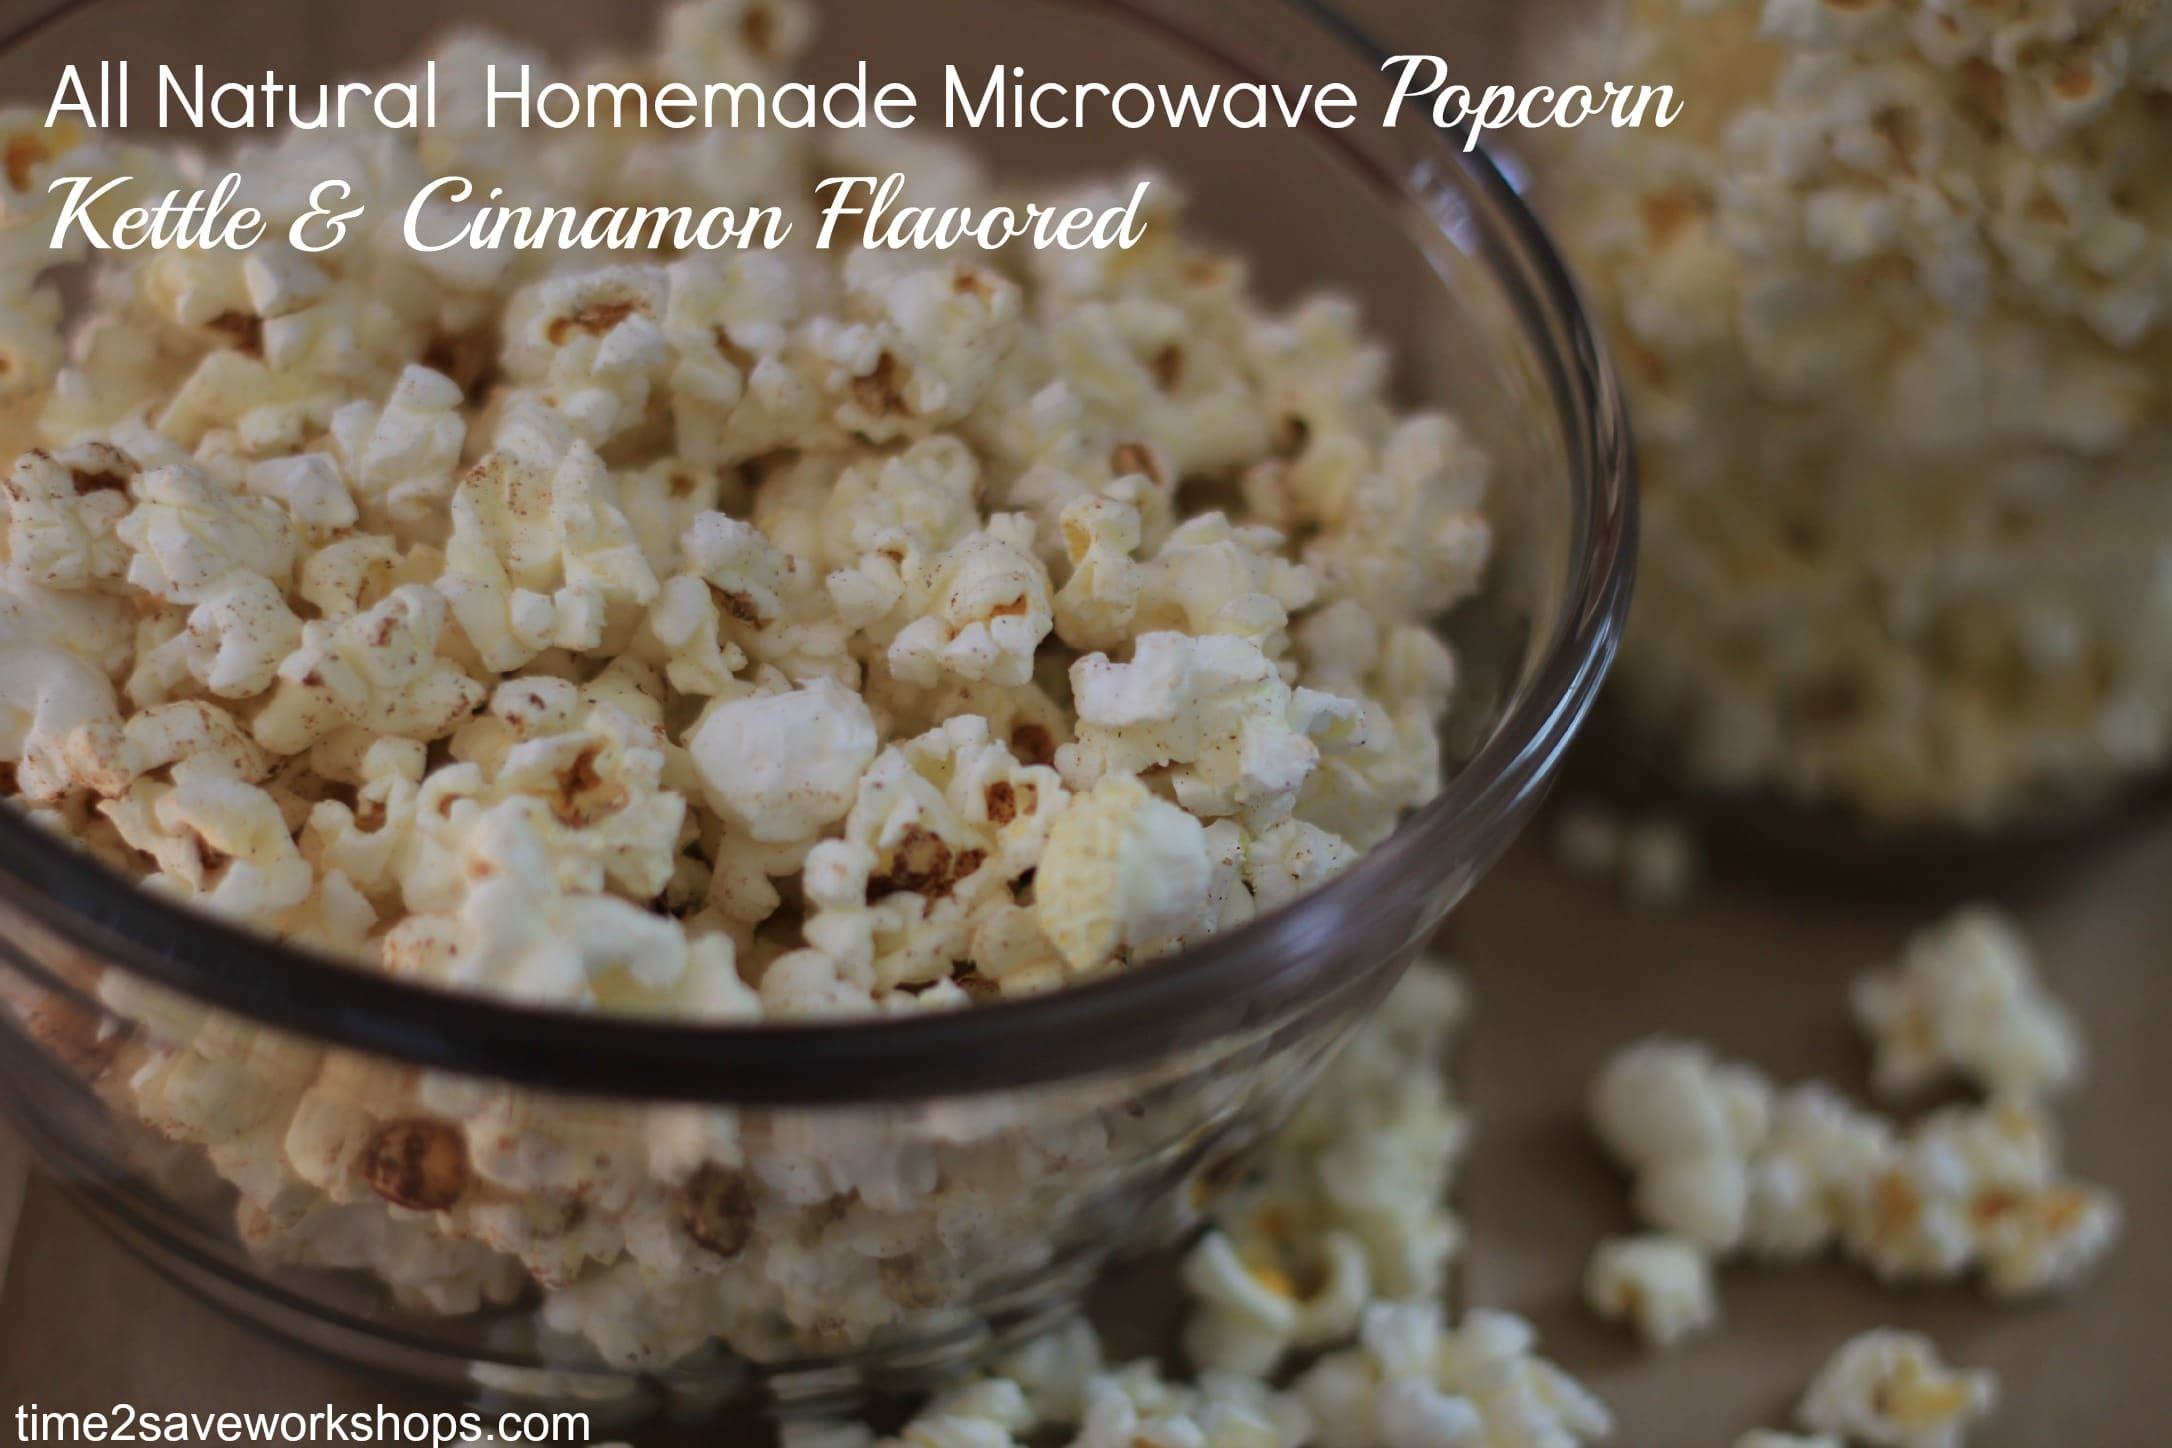 Homemade Microwave Popcorn All Natural Healthy Snack Idea